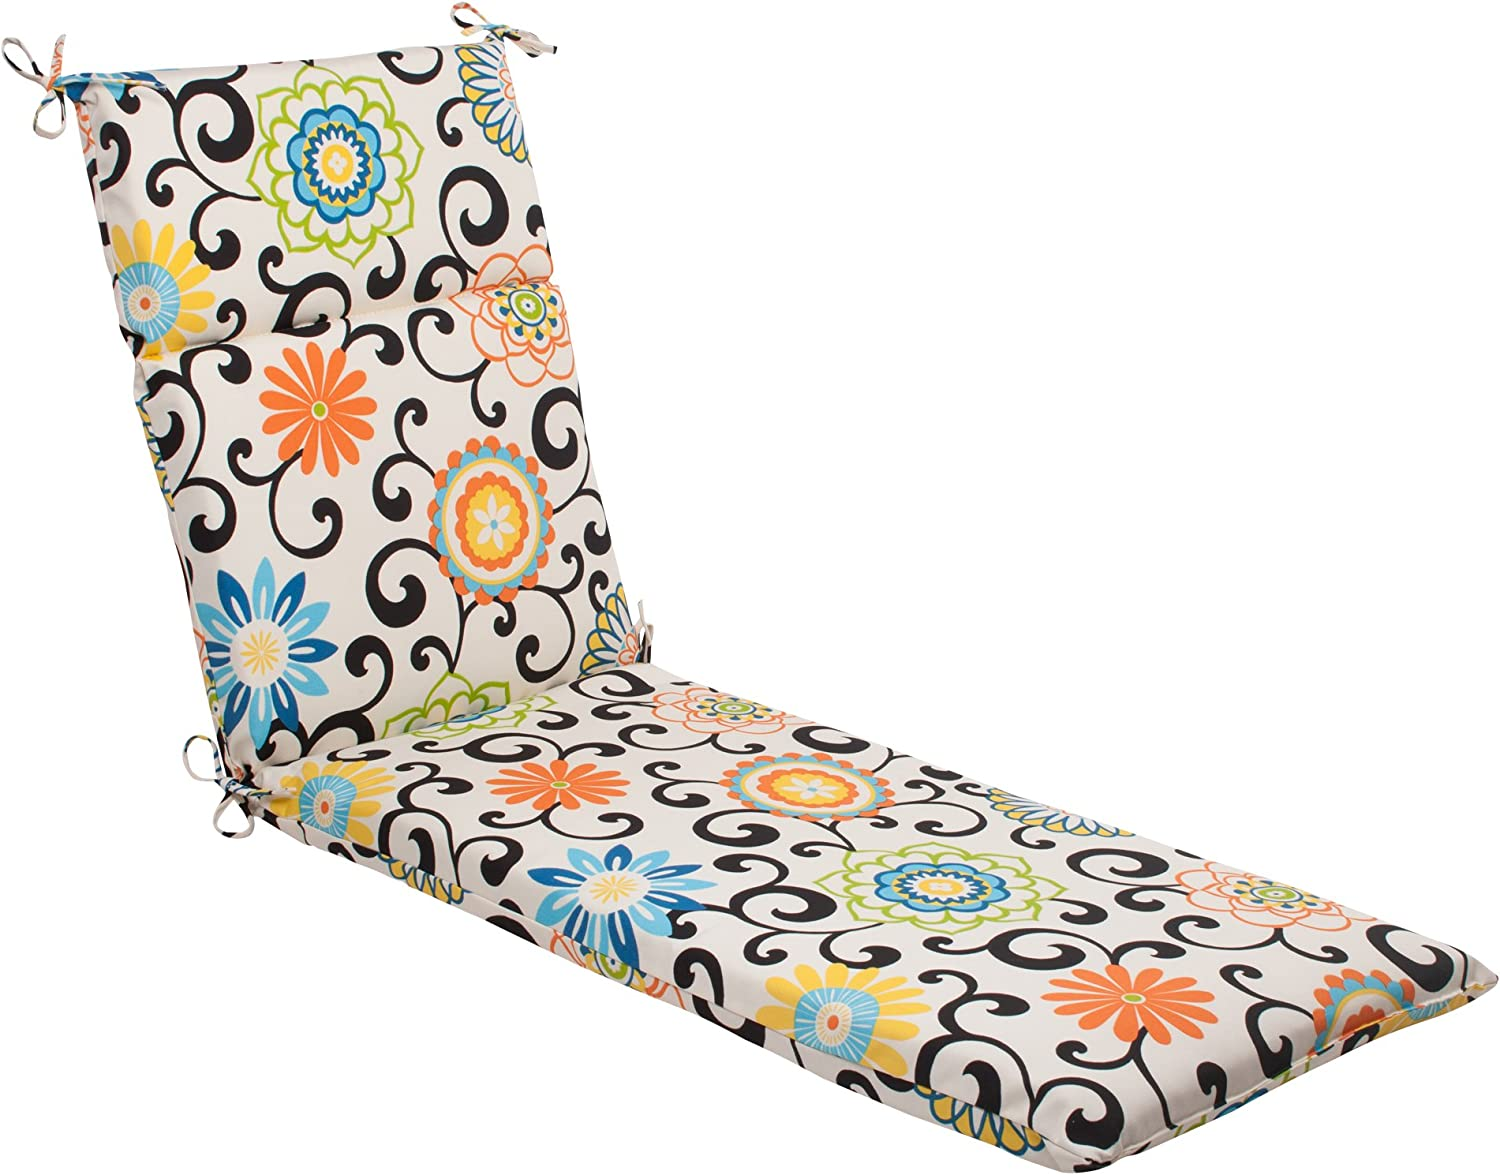 Indoor Outdoor Pom Pom Play Chaise Lounge Cushion, Lagoon